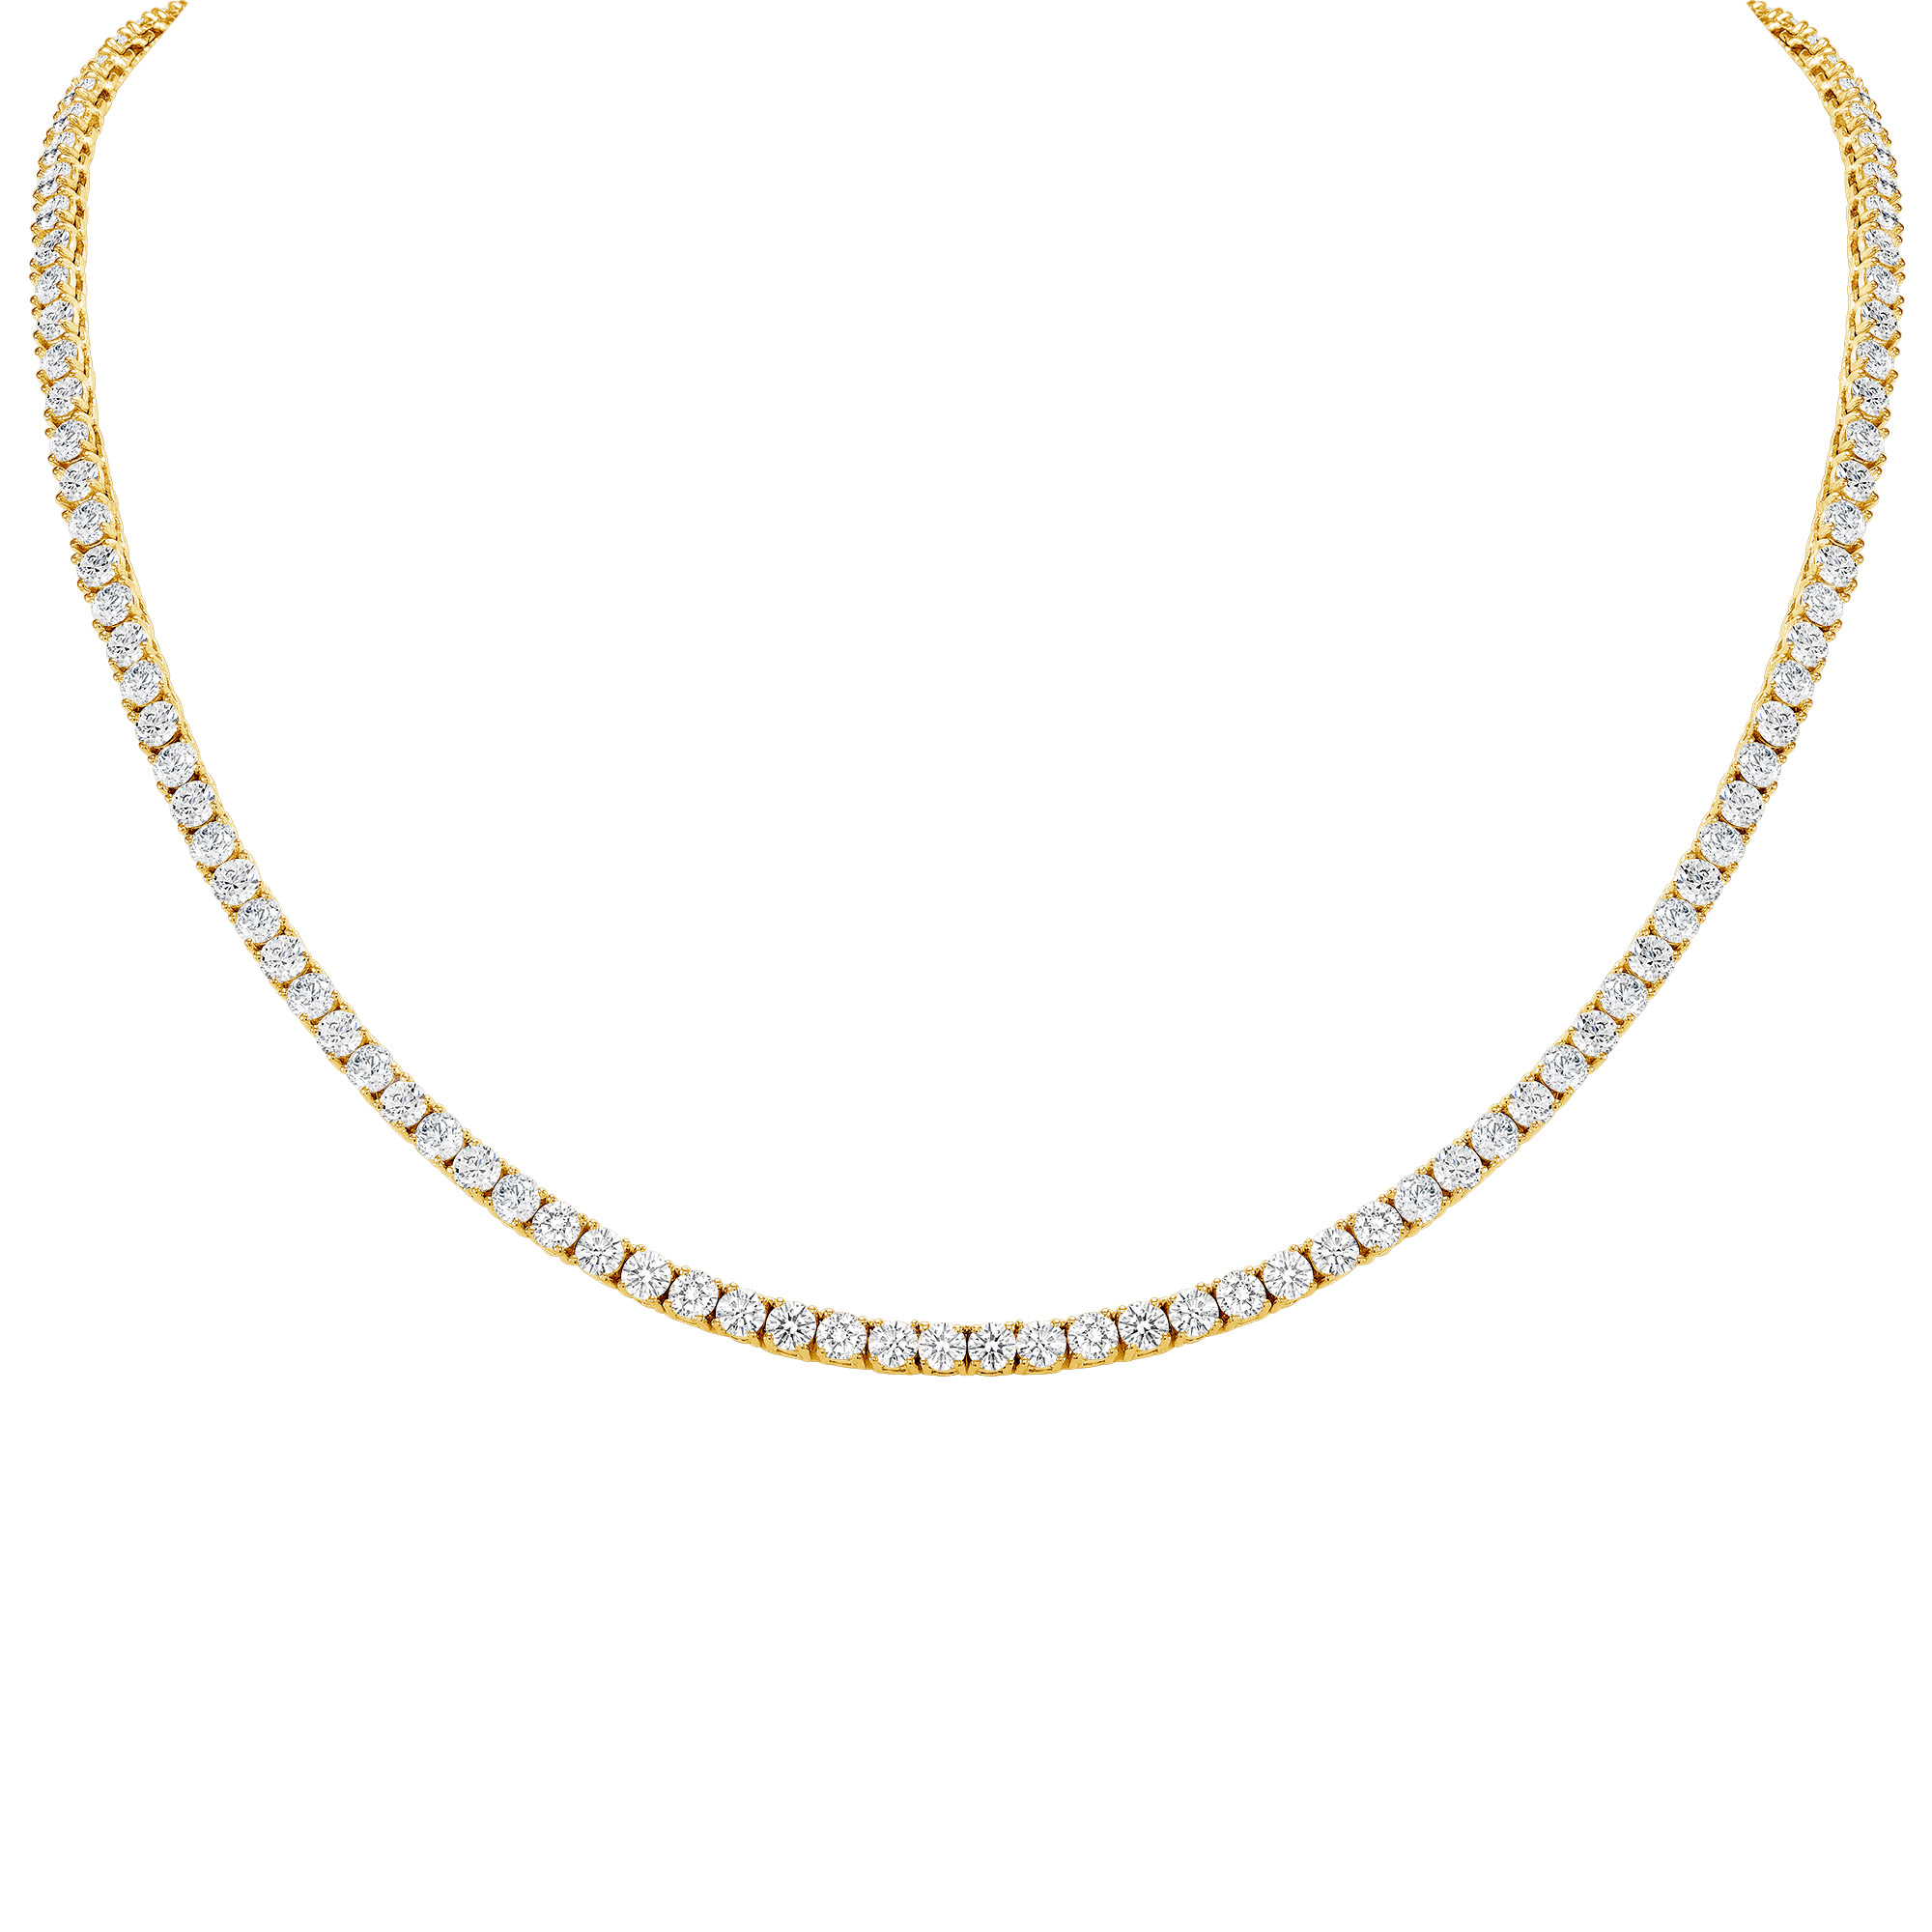 eternity necklace in yellow gold